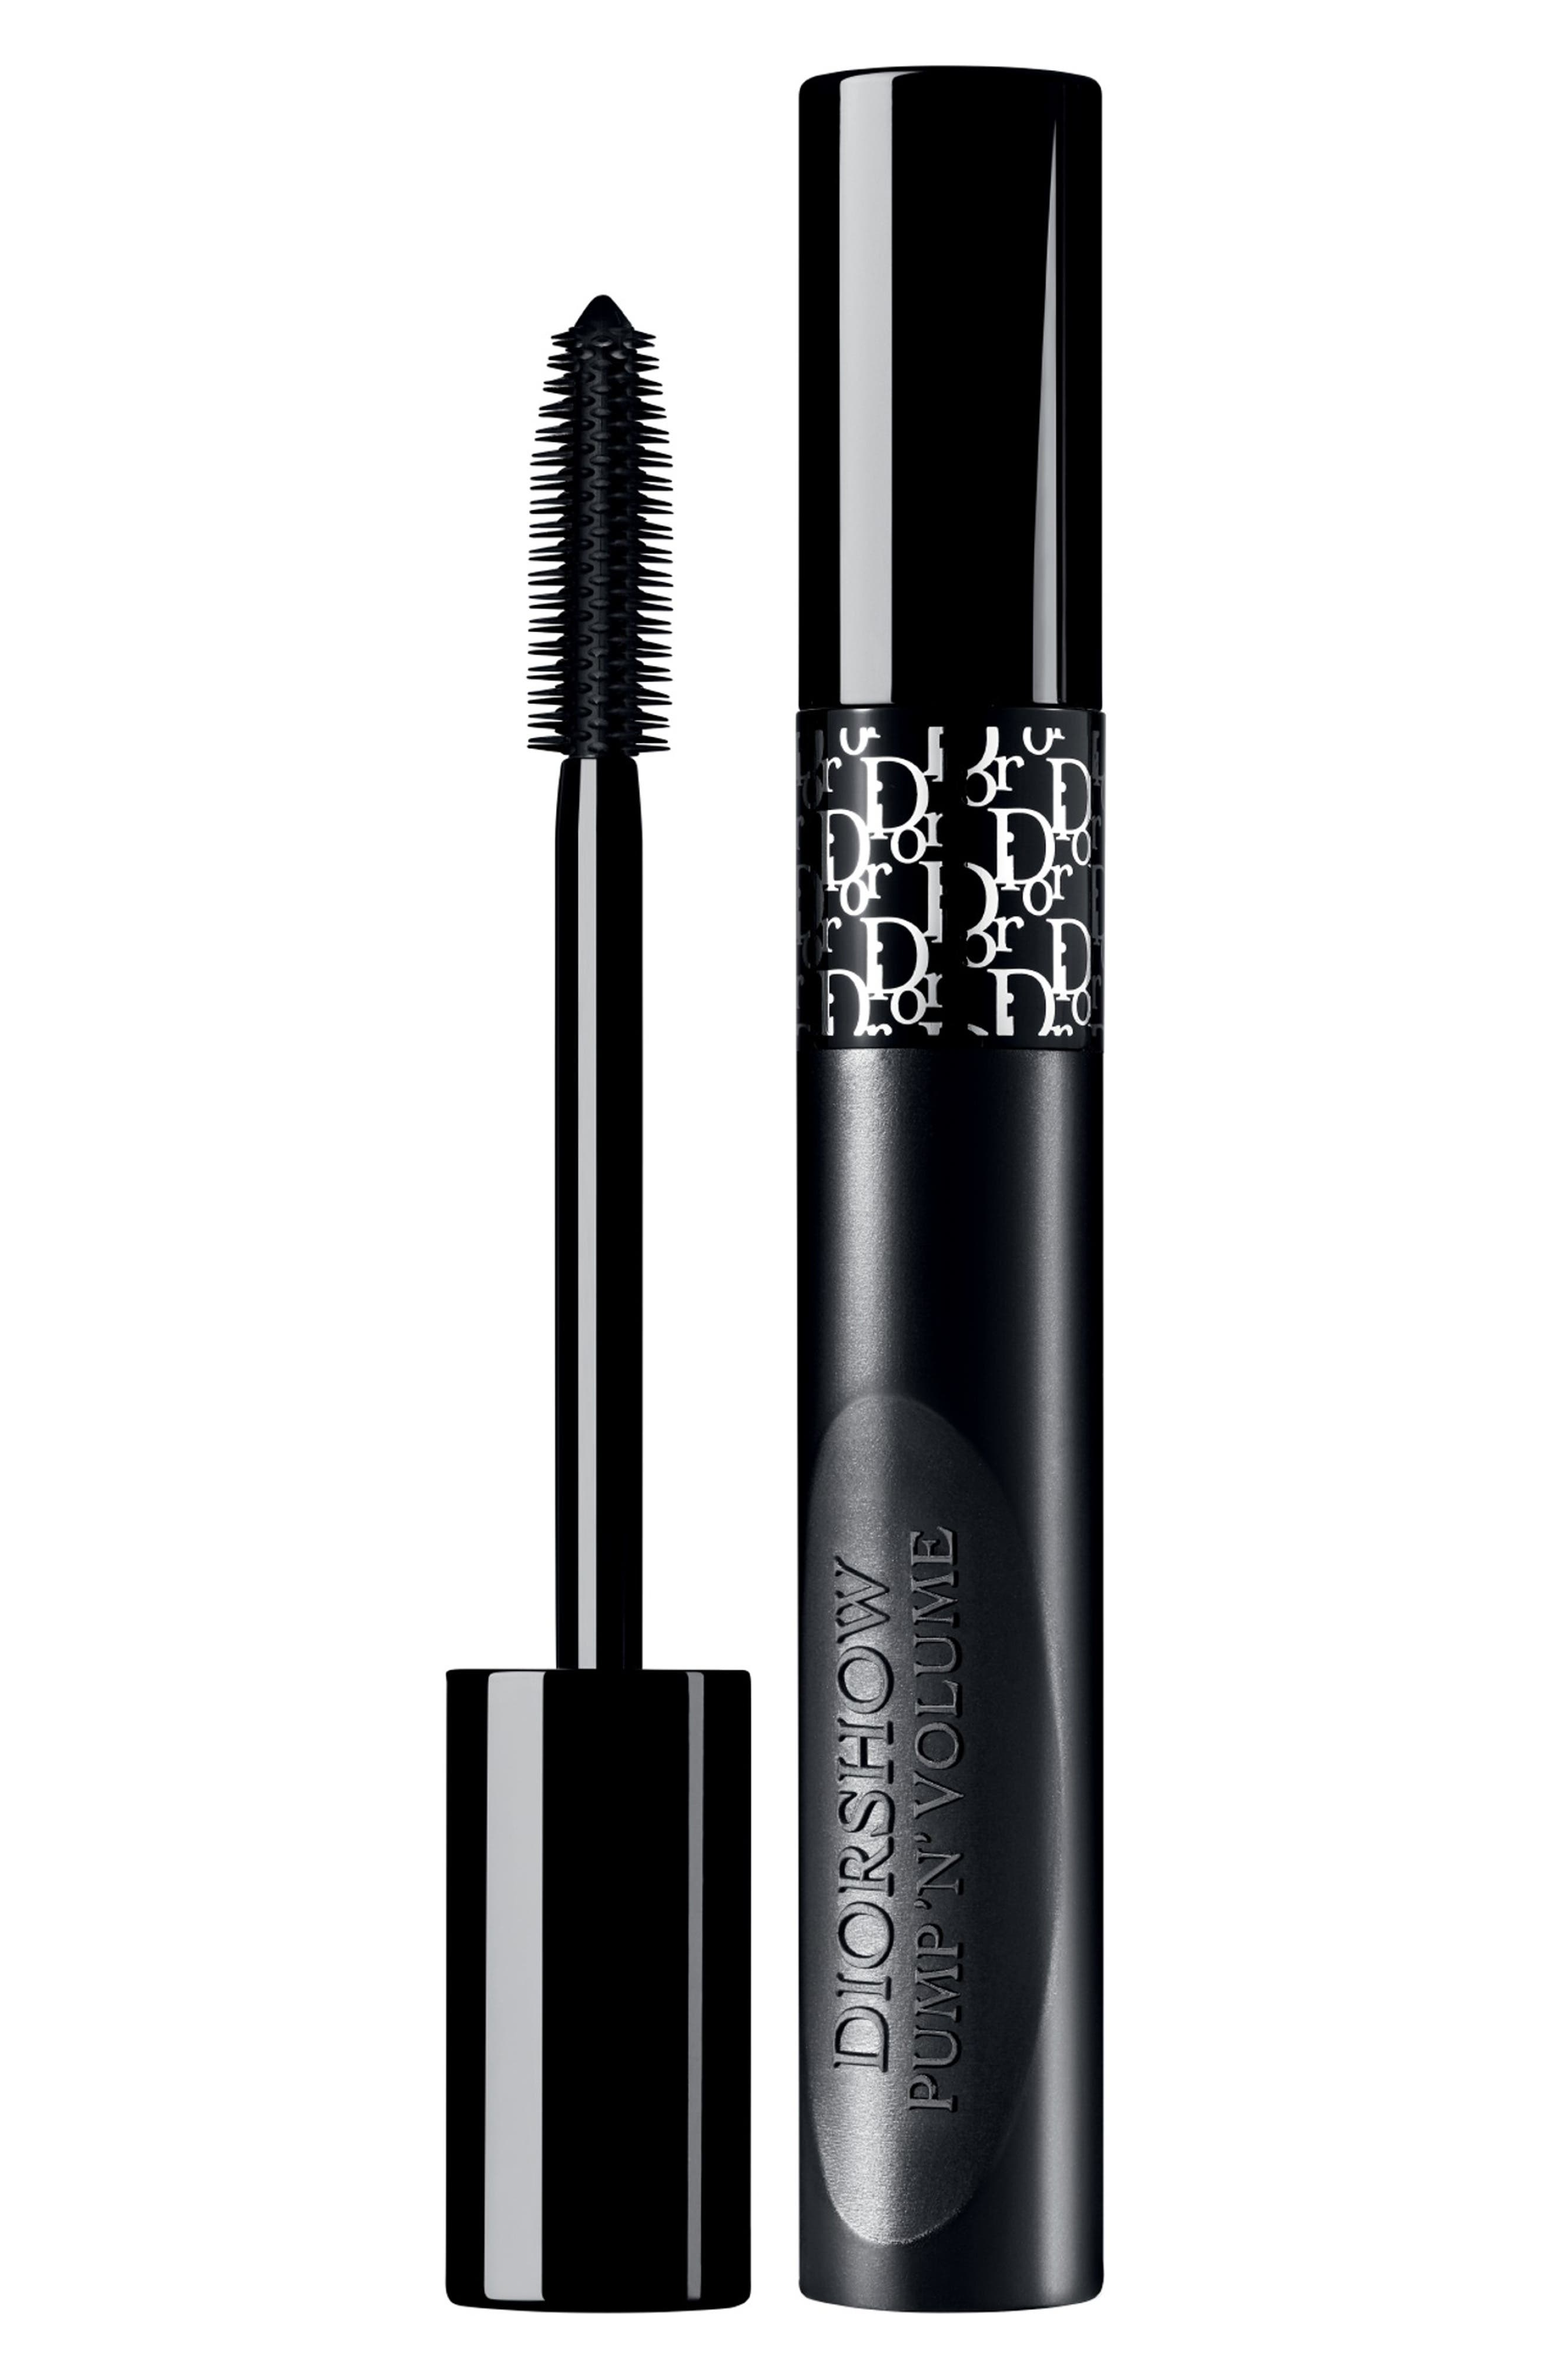 6a4be0191f3 diorshow mascara | Nordstrom